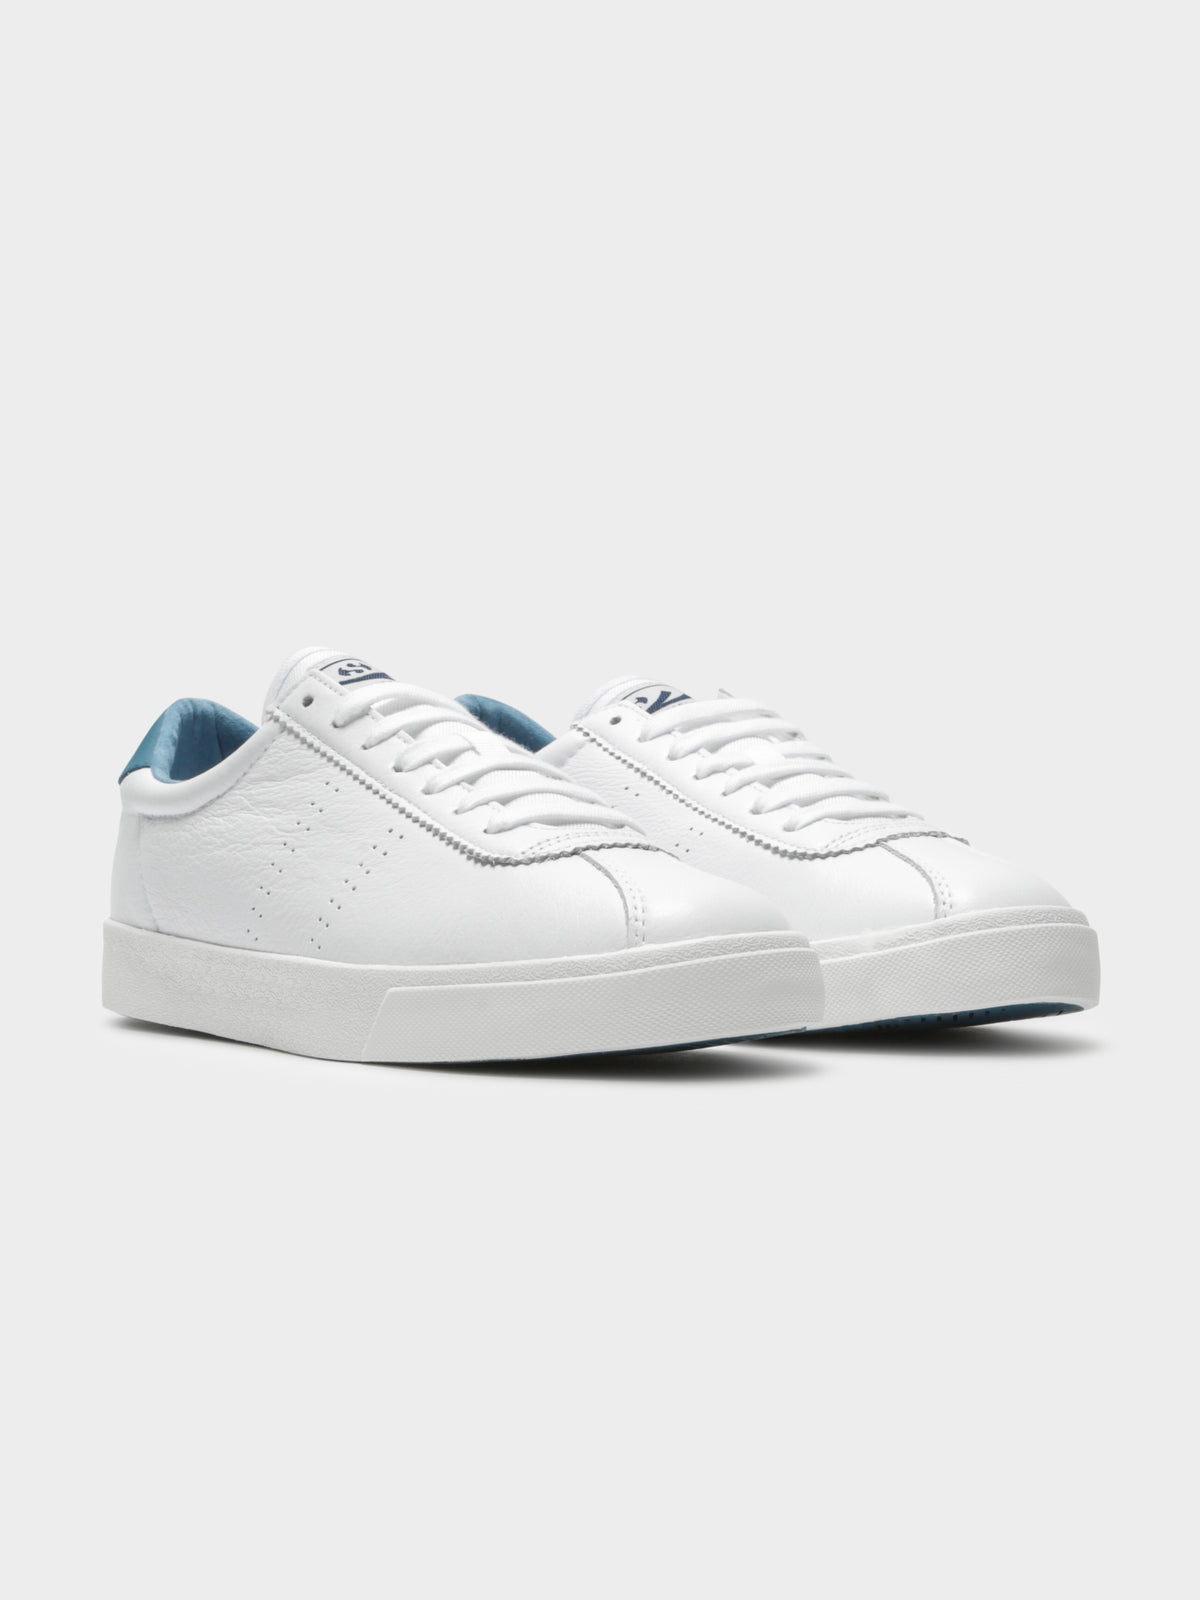 2843 Clubs Comfleau Sneakers in White & Blue